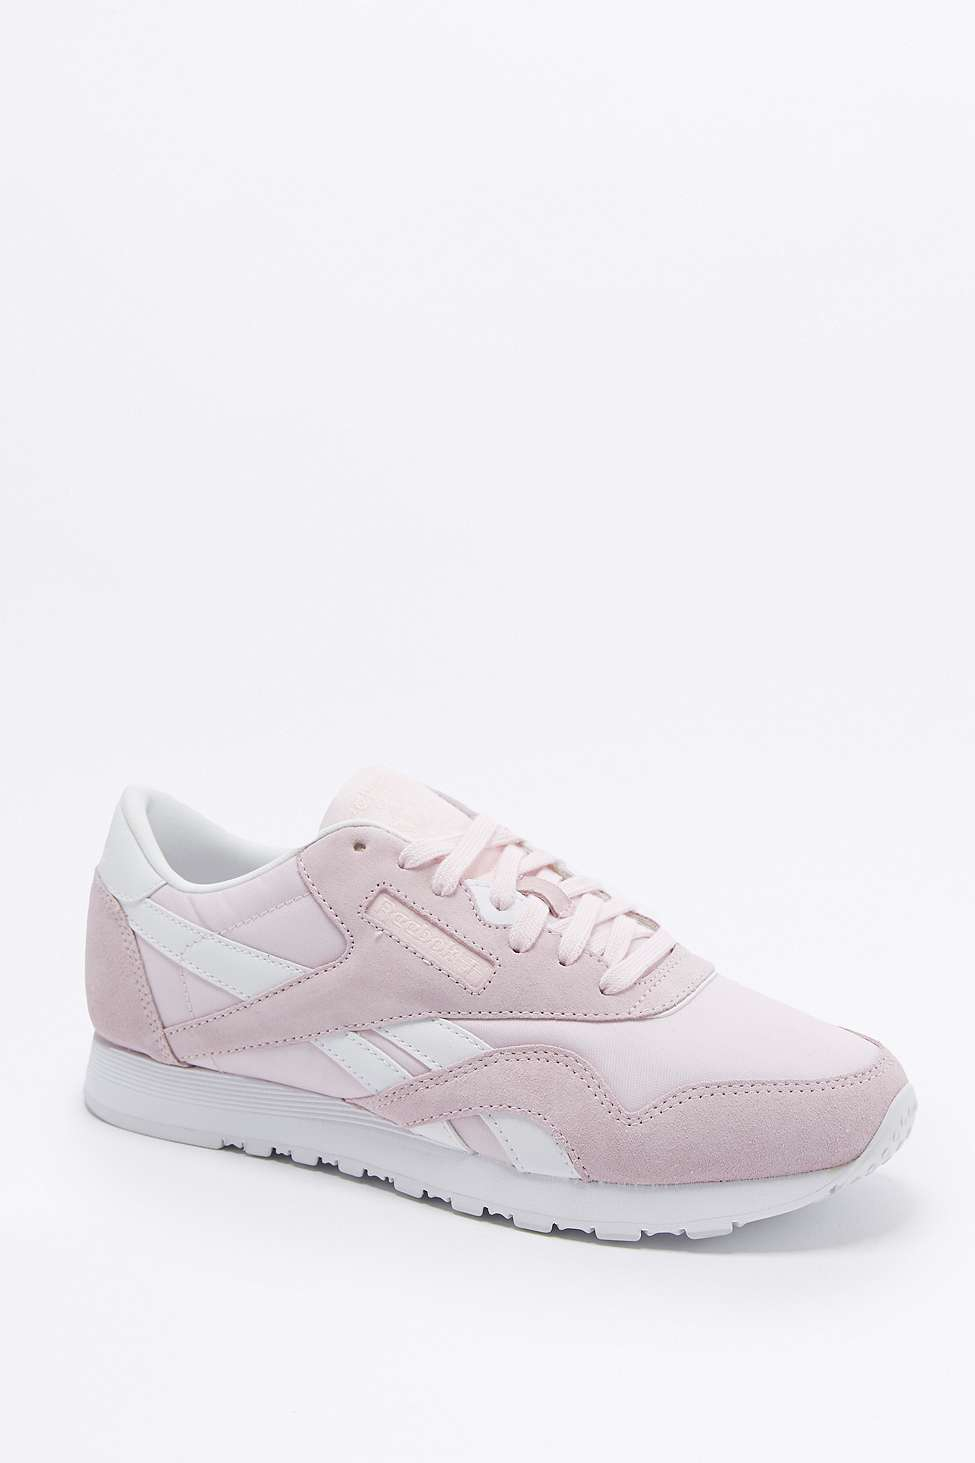 lyst reebok classic pink nylon trainers in pink. Black Bedroom Furniture Sets. Home Design Ideas